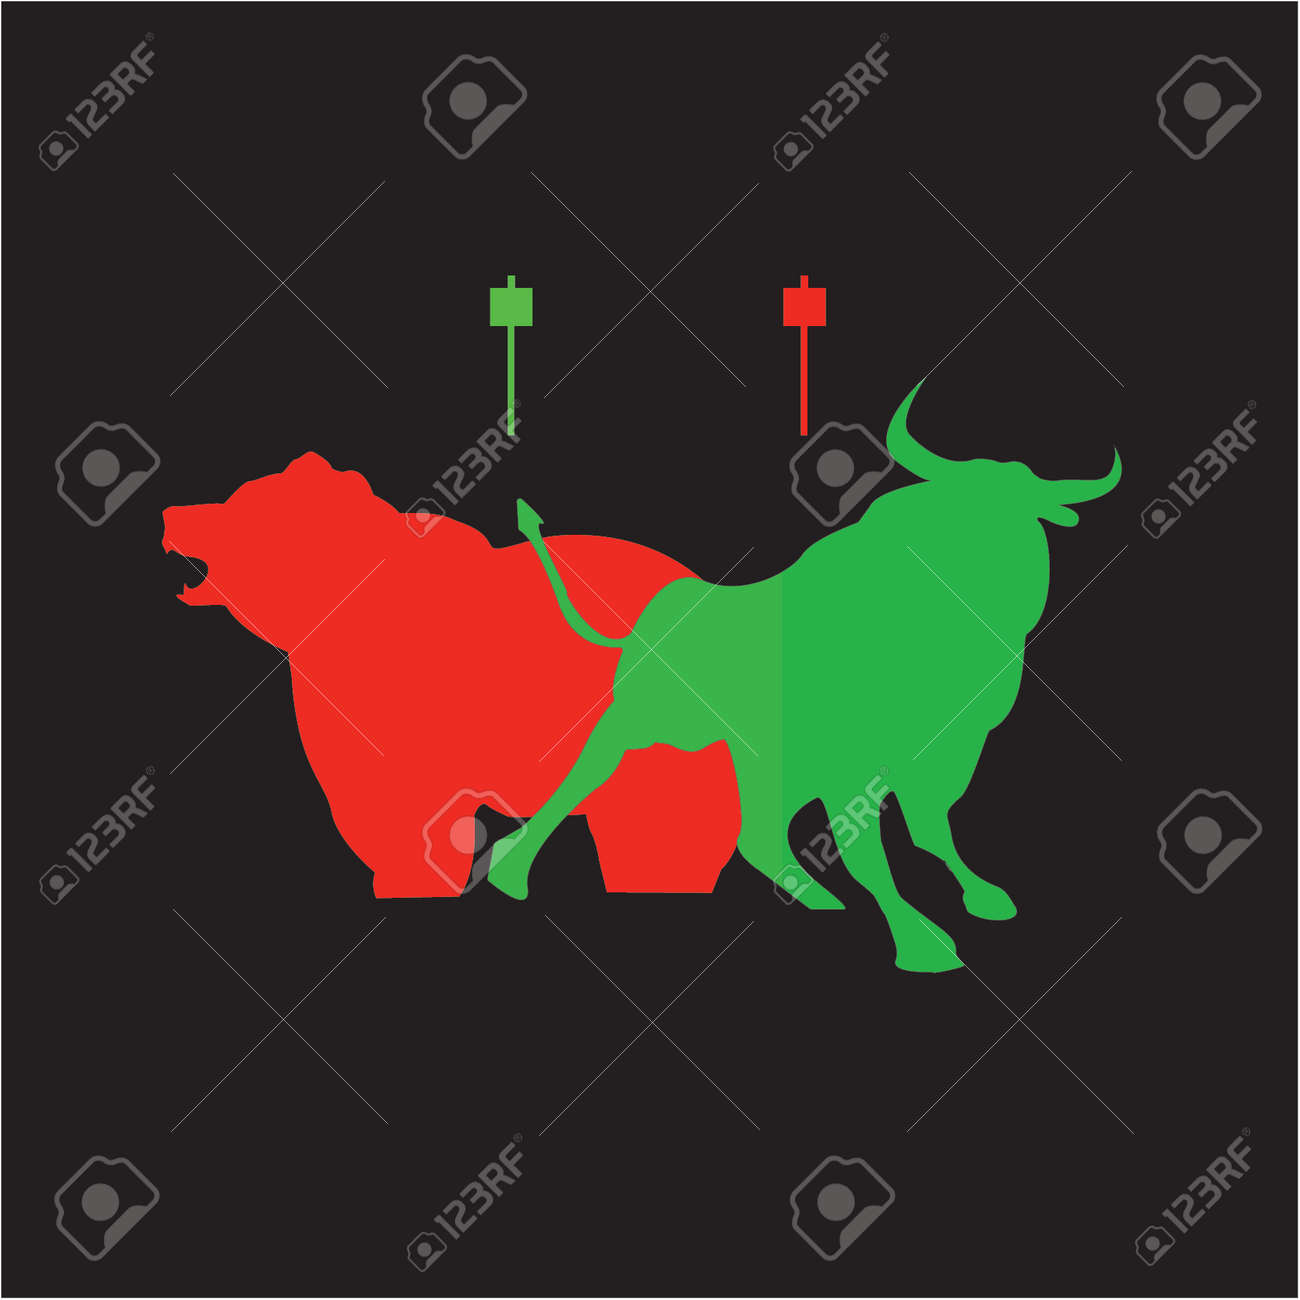 Bear and Bull candlestick take profit buy and sell trader